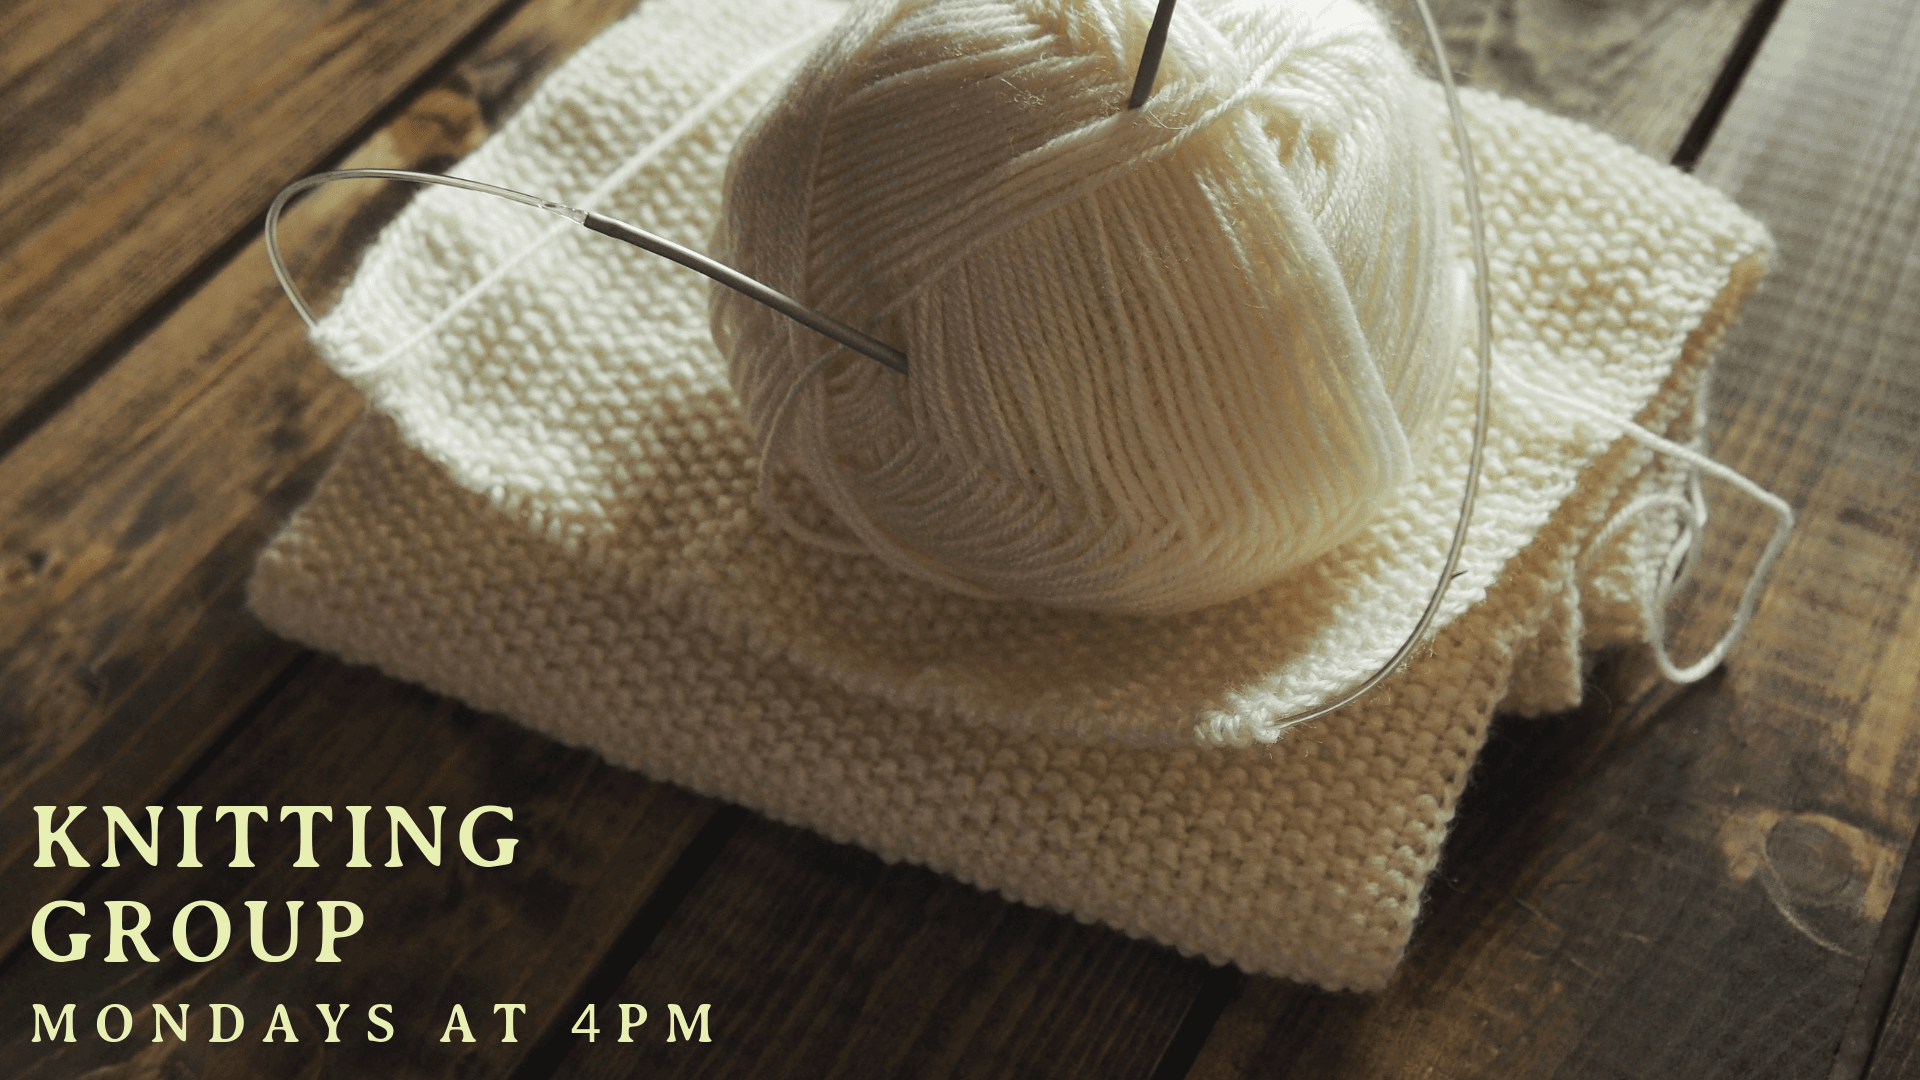 Knitting Group Every Monday at 4 p.m.